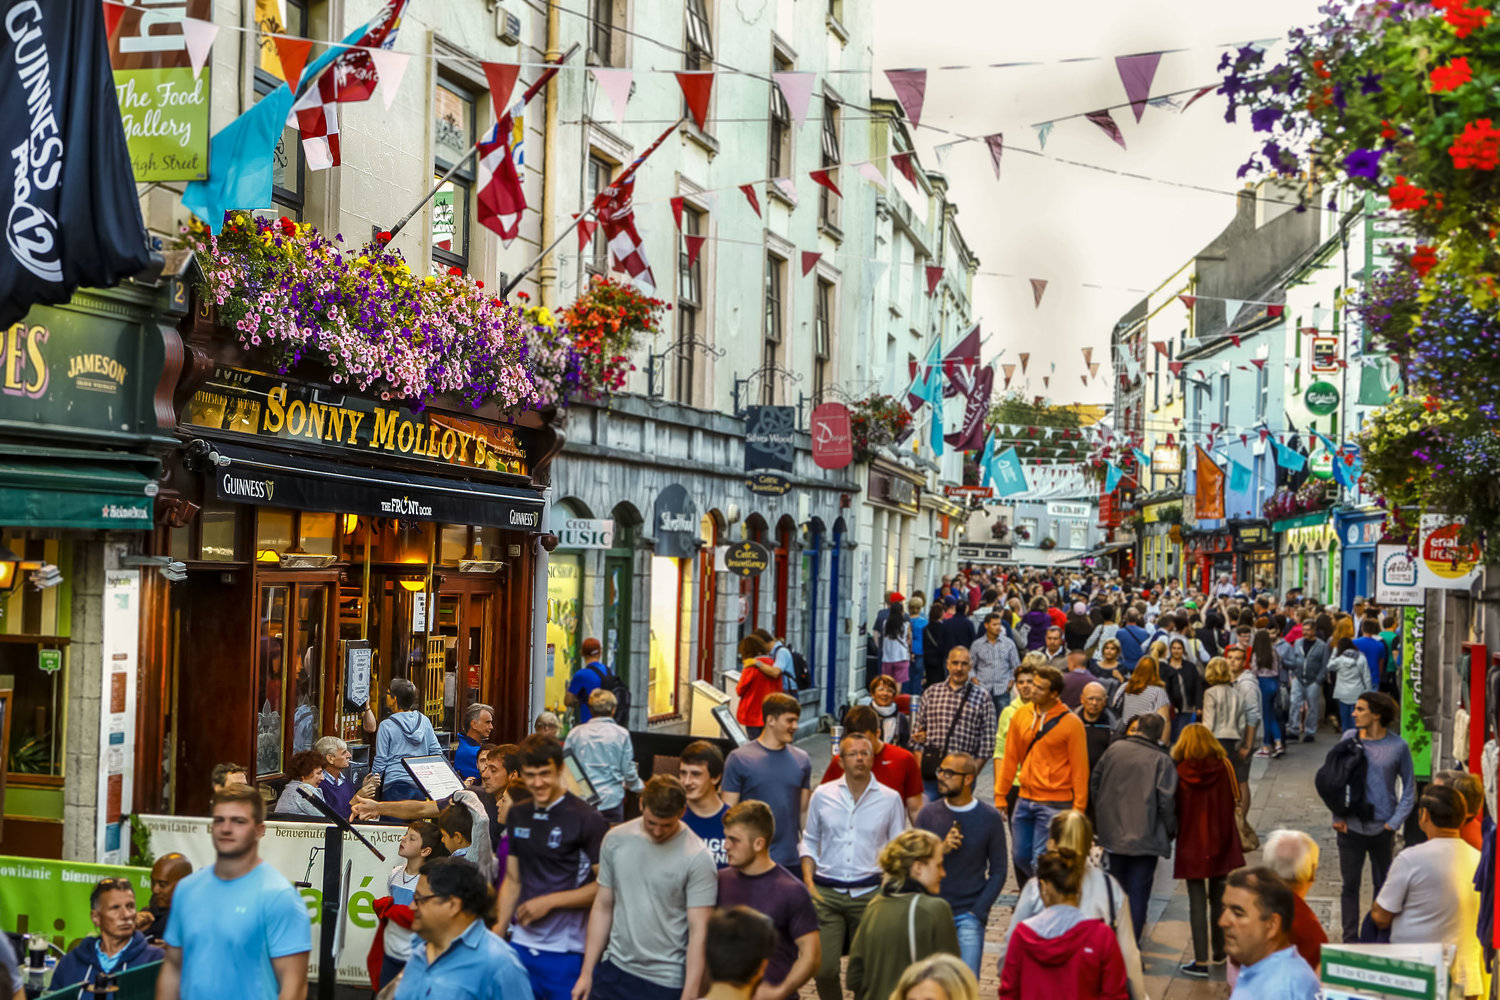 https://travelinspires.org/wp-content/uploads/2019/09/Galway-whiskey-trail-route.jpg